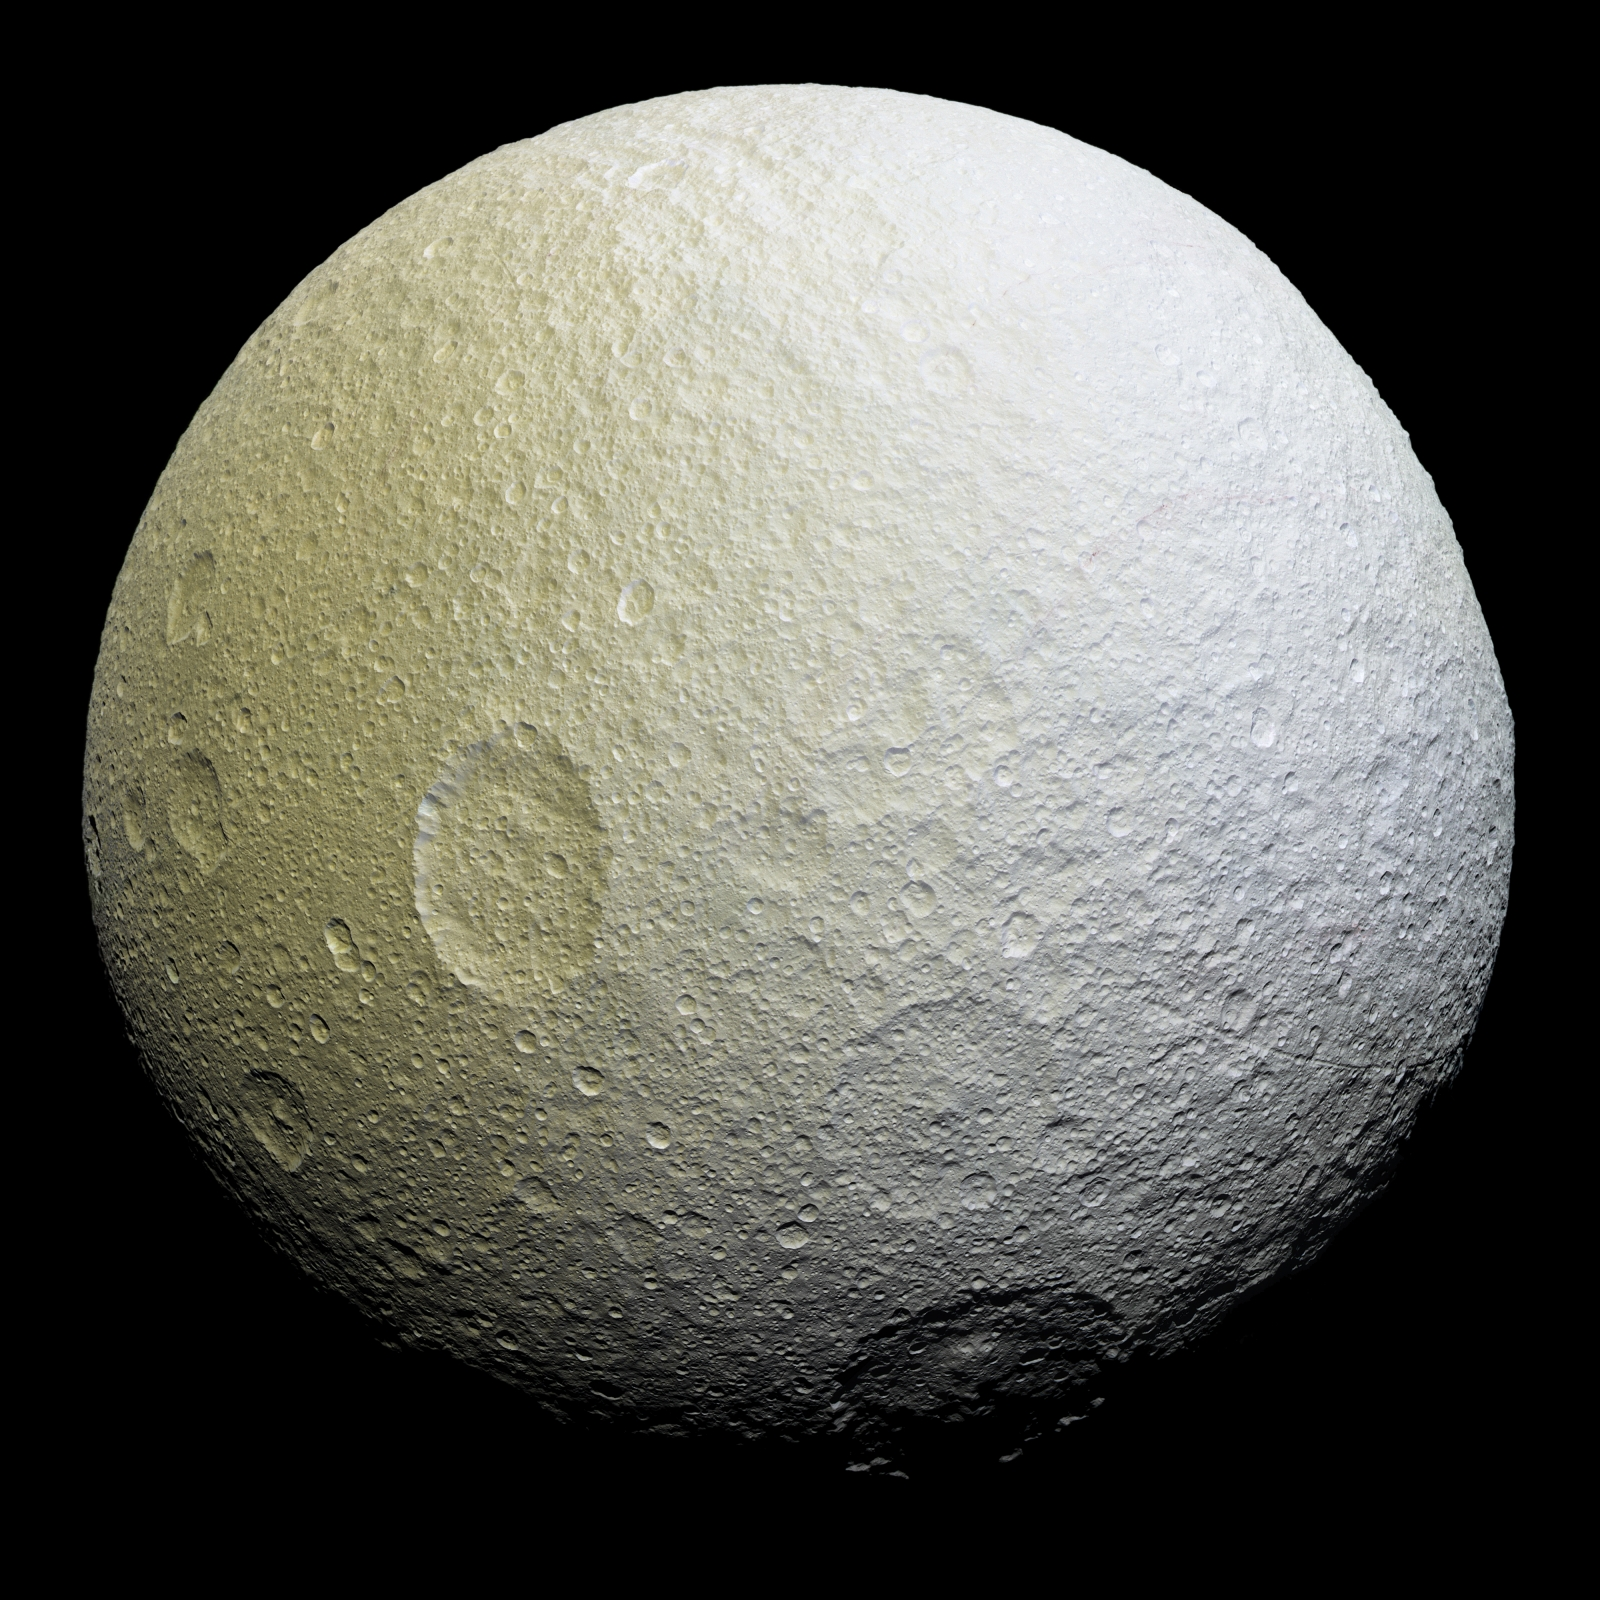 Saturn's icy moon Tethys